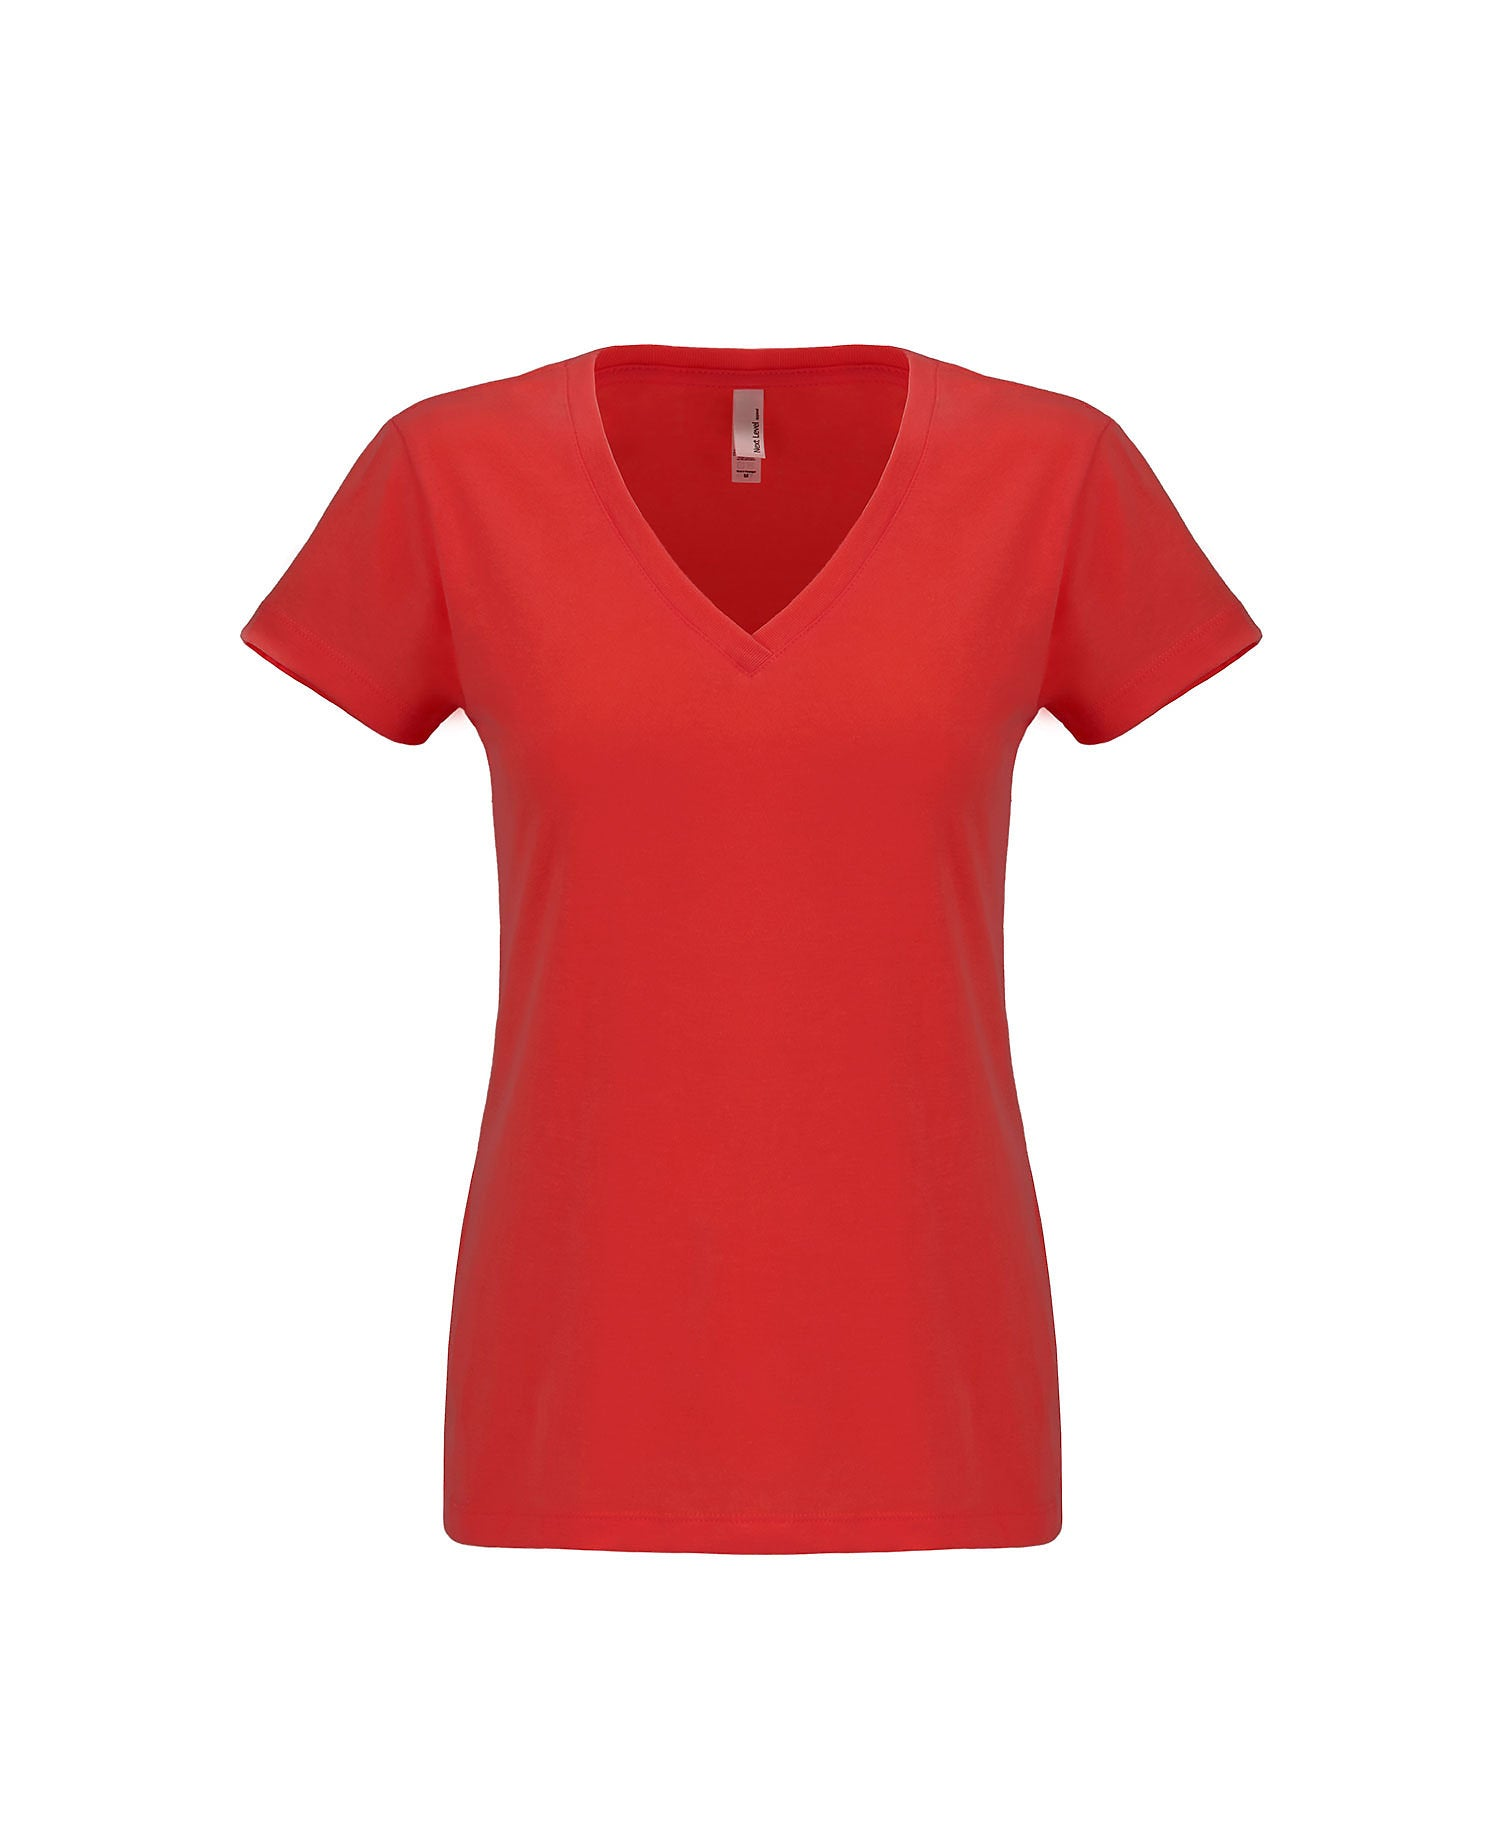 Next-Level-Women-039-s-Sueded-V-Neck-Tee-NL6480 thumbnail 19